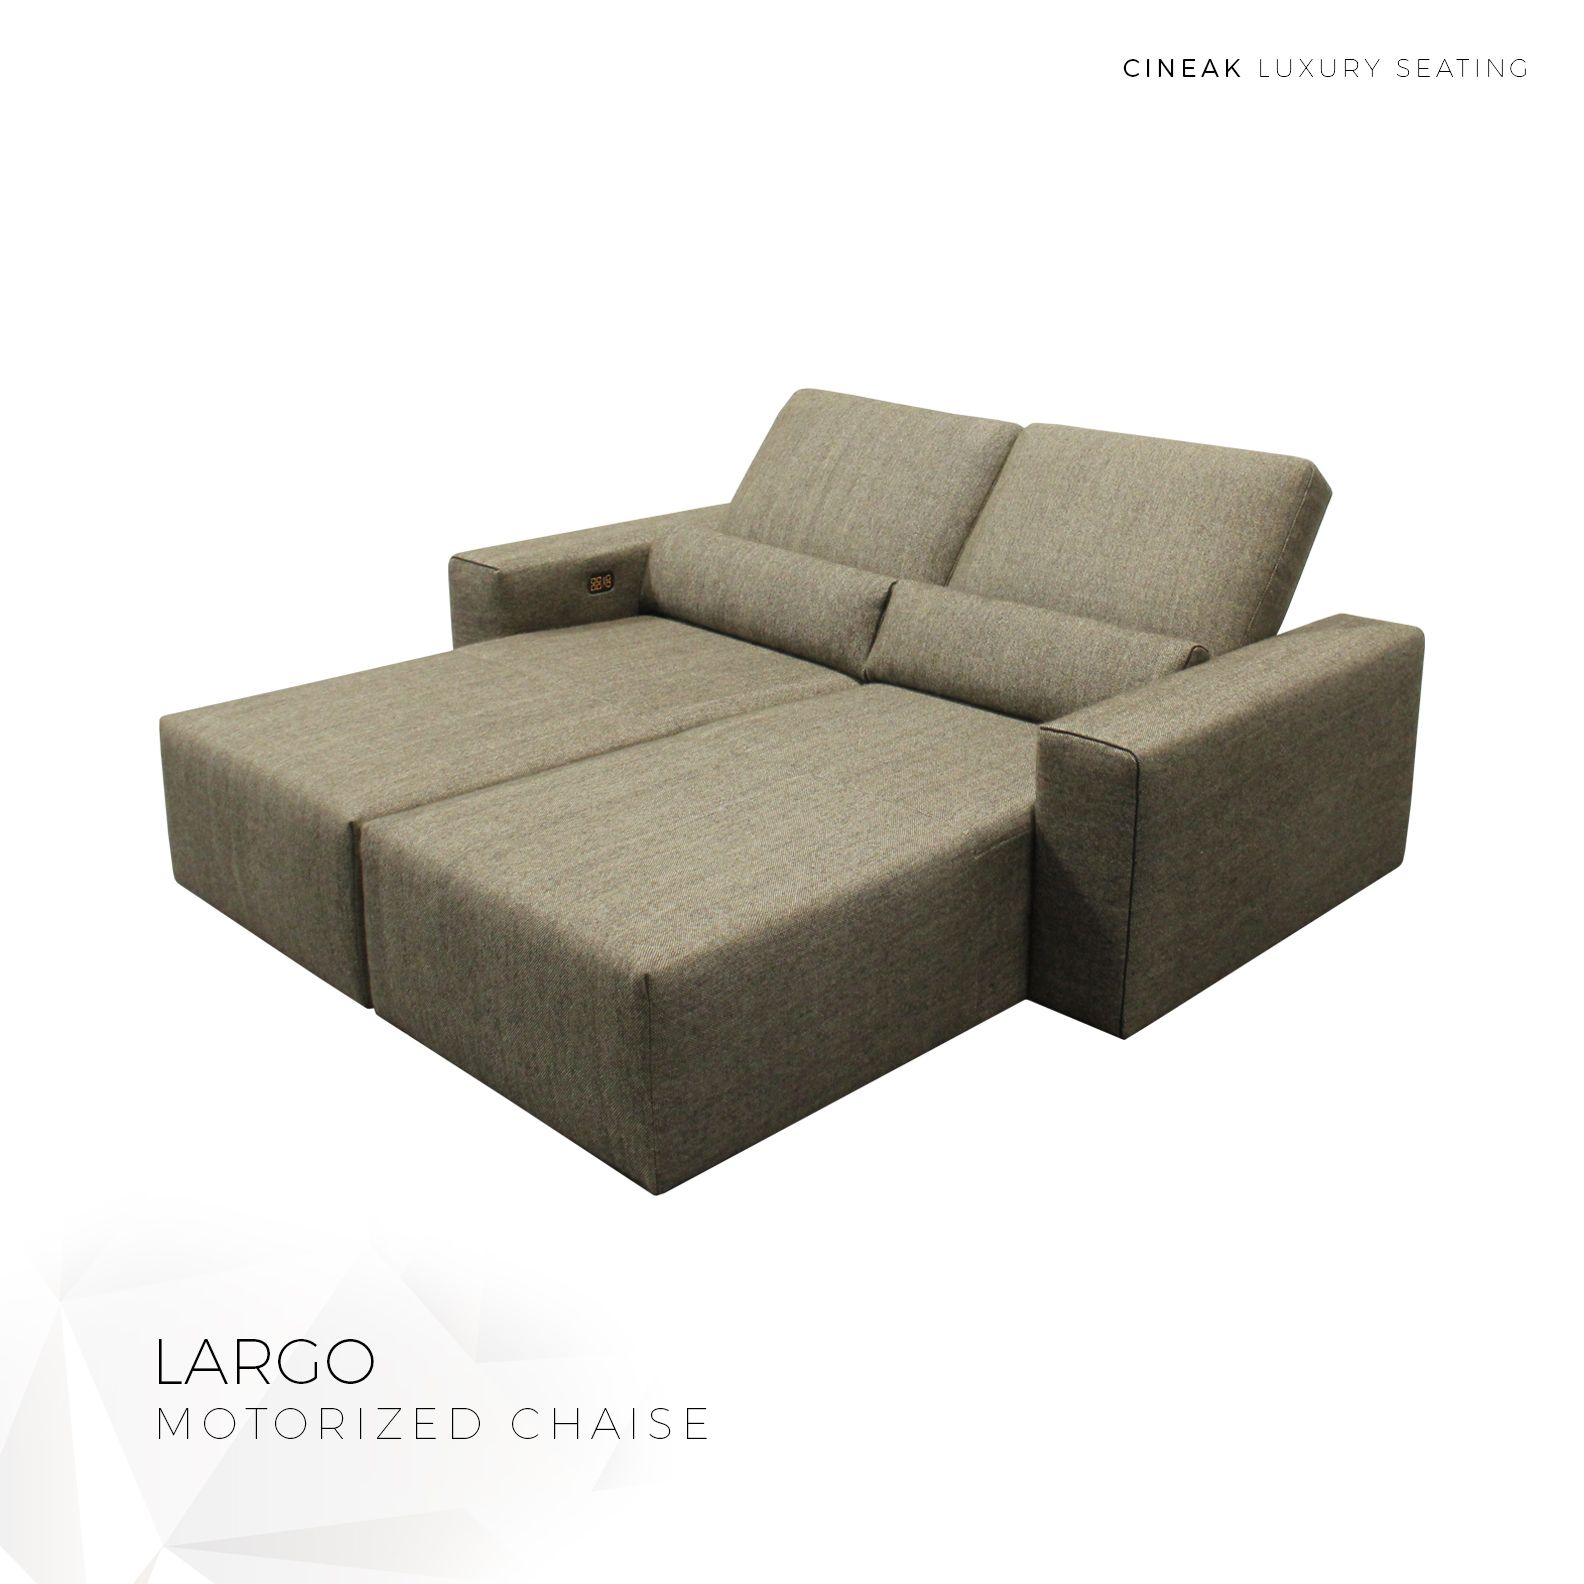 Motorized Chaise Cinema Seats Seating Theatre Room